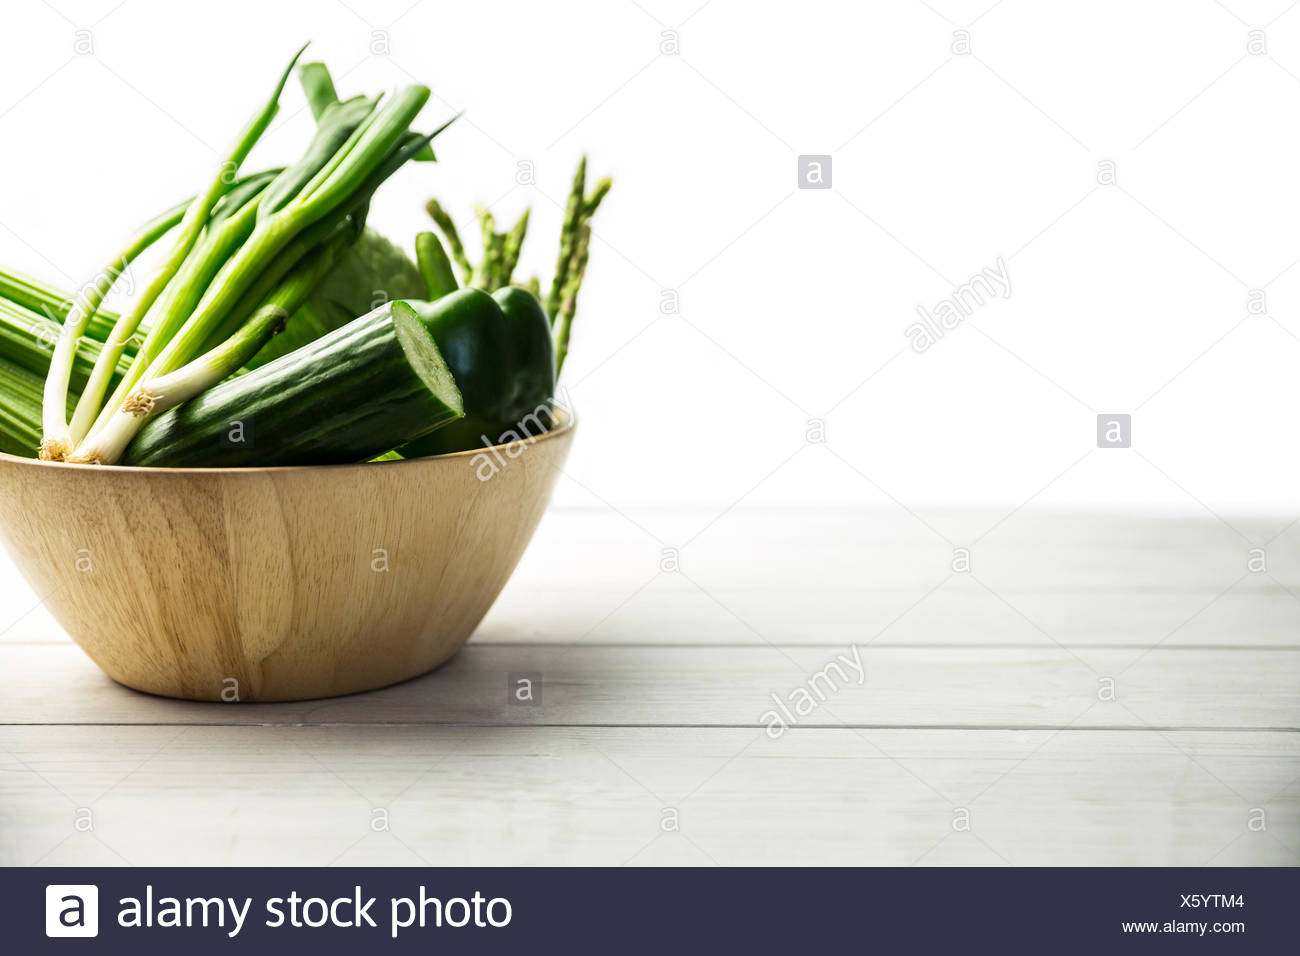 Green vegetables in bowl Stock Photo